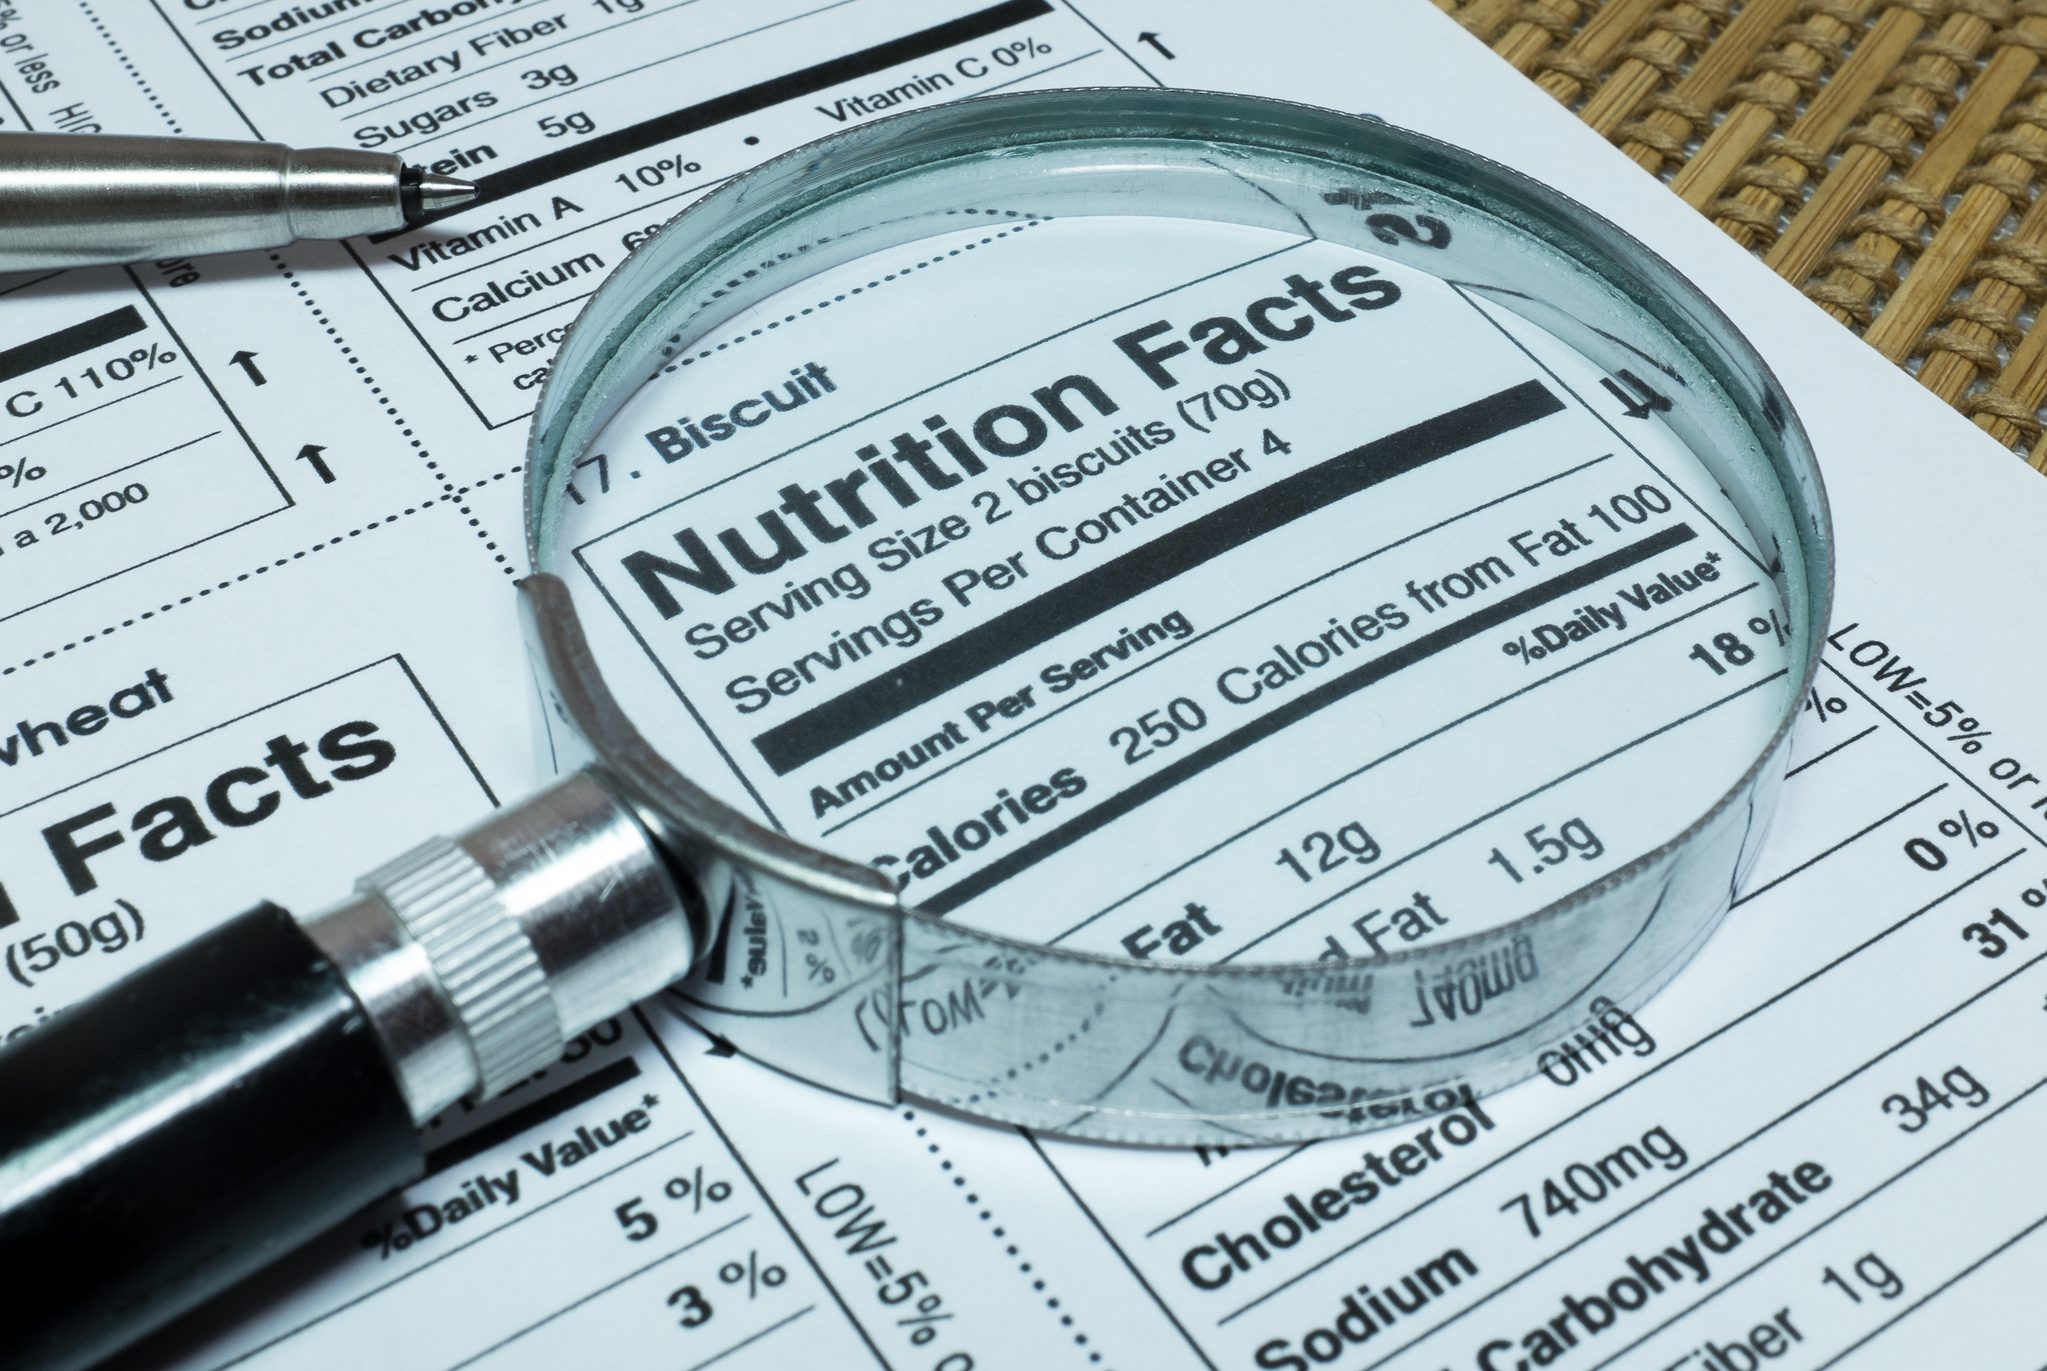 'It's important to read the nutrition labels of the food you buy at the grocery store,' says UConn Health cardiologist Dr. Aseem Vashist. 'You can't go wrong by substituting saturated fats and sugar products with more fruits, vegetables, whole grains, and fewer calories.' (Getty Images)